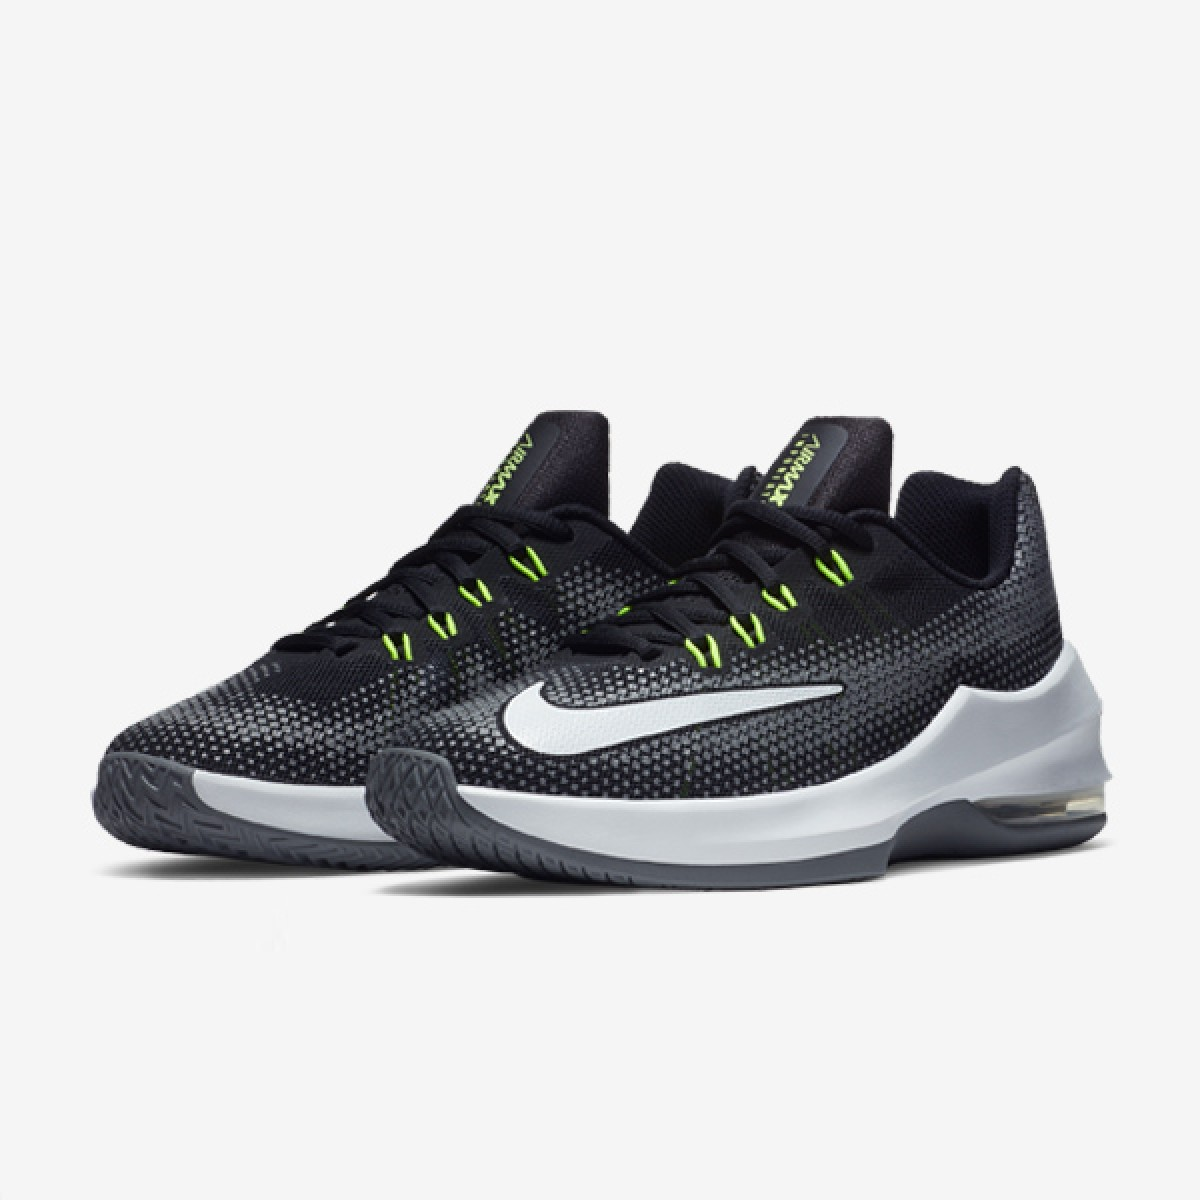 Nike Air Max Infuriate GS 'Black/Grey' 869991-005